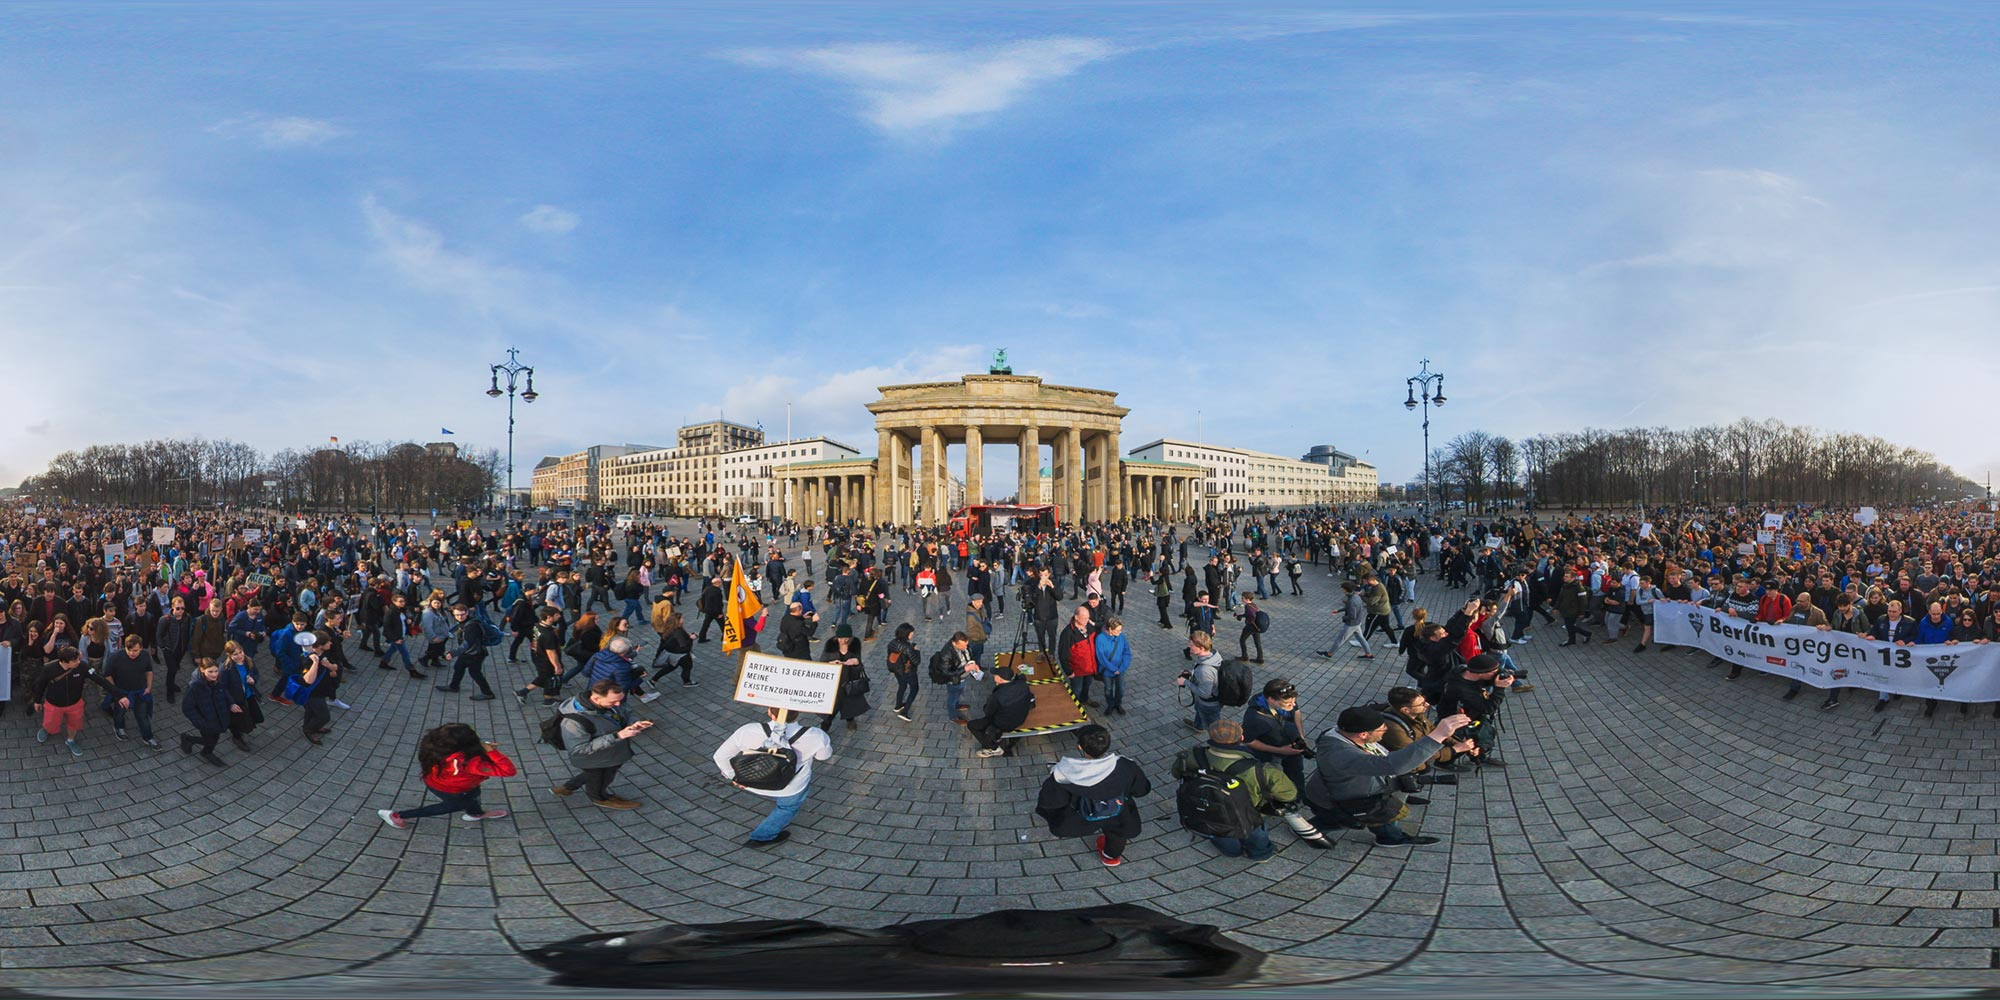 Panorama Berlin Brandenburger Tor - Artikel 13 Demo 23.3.2019